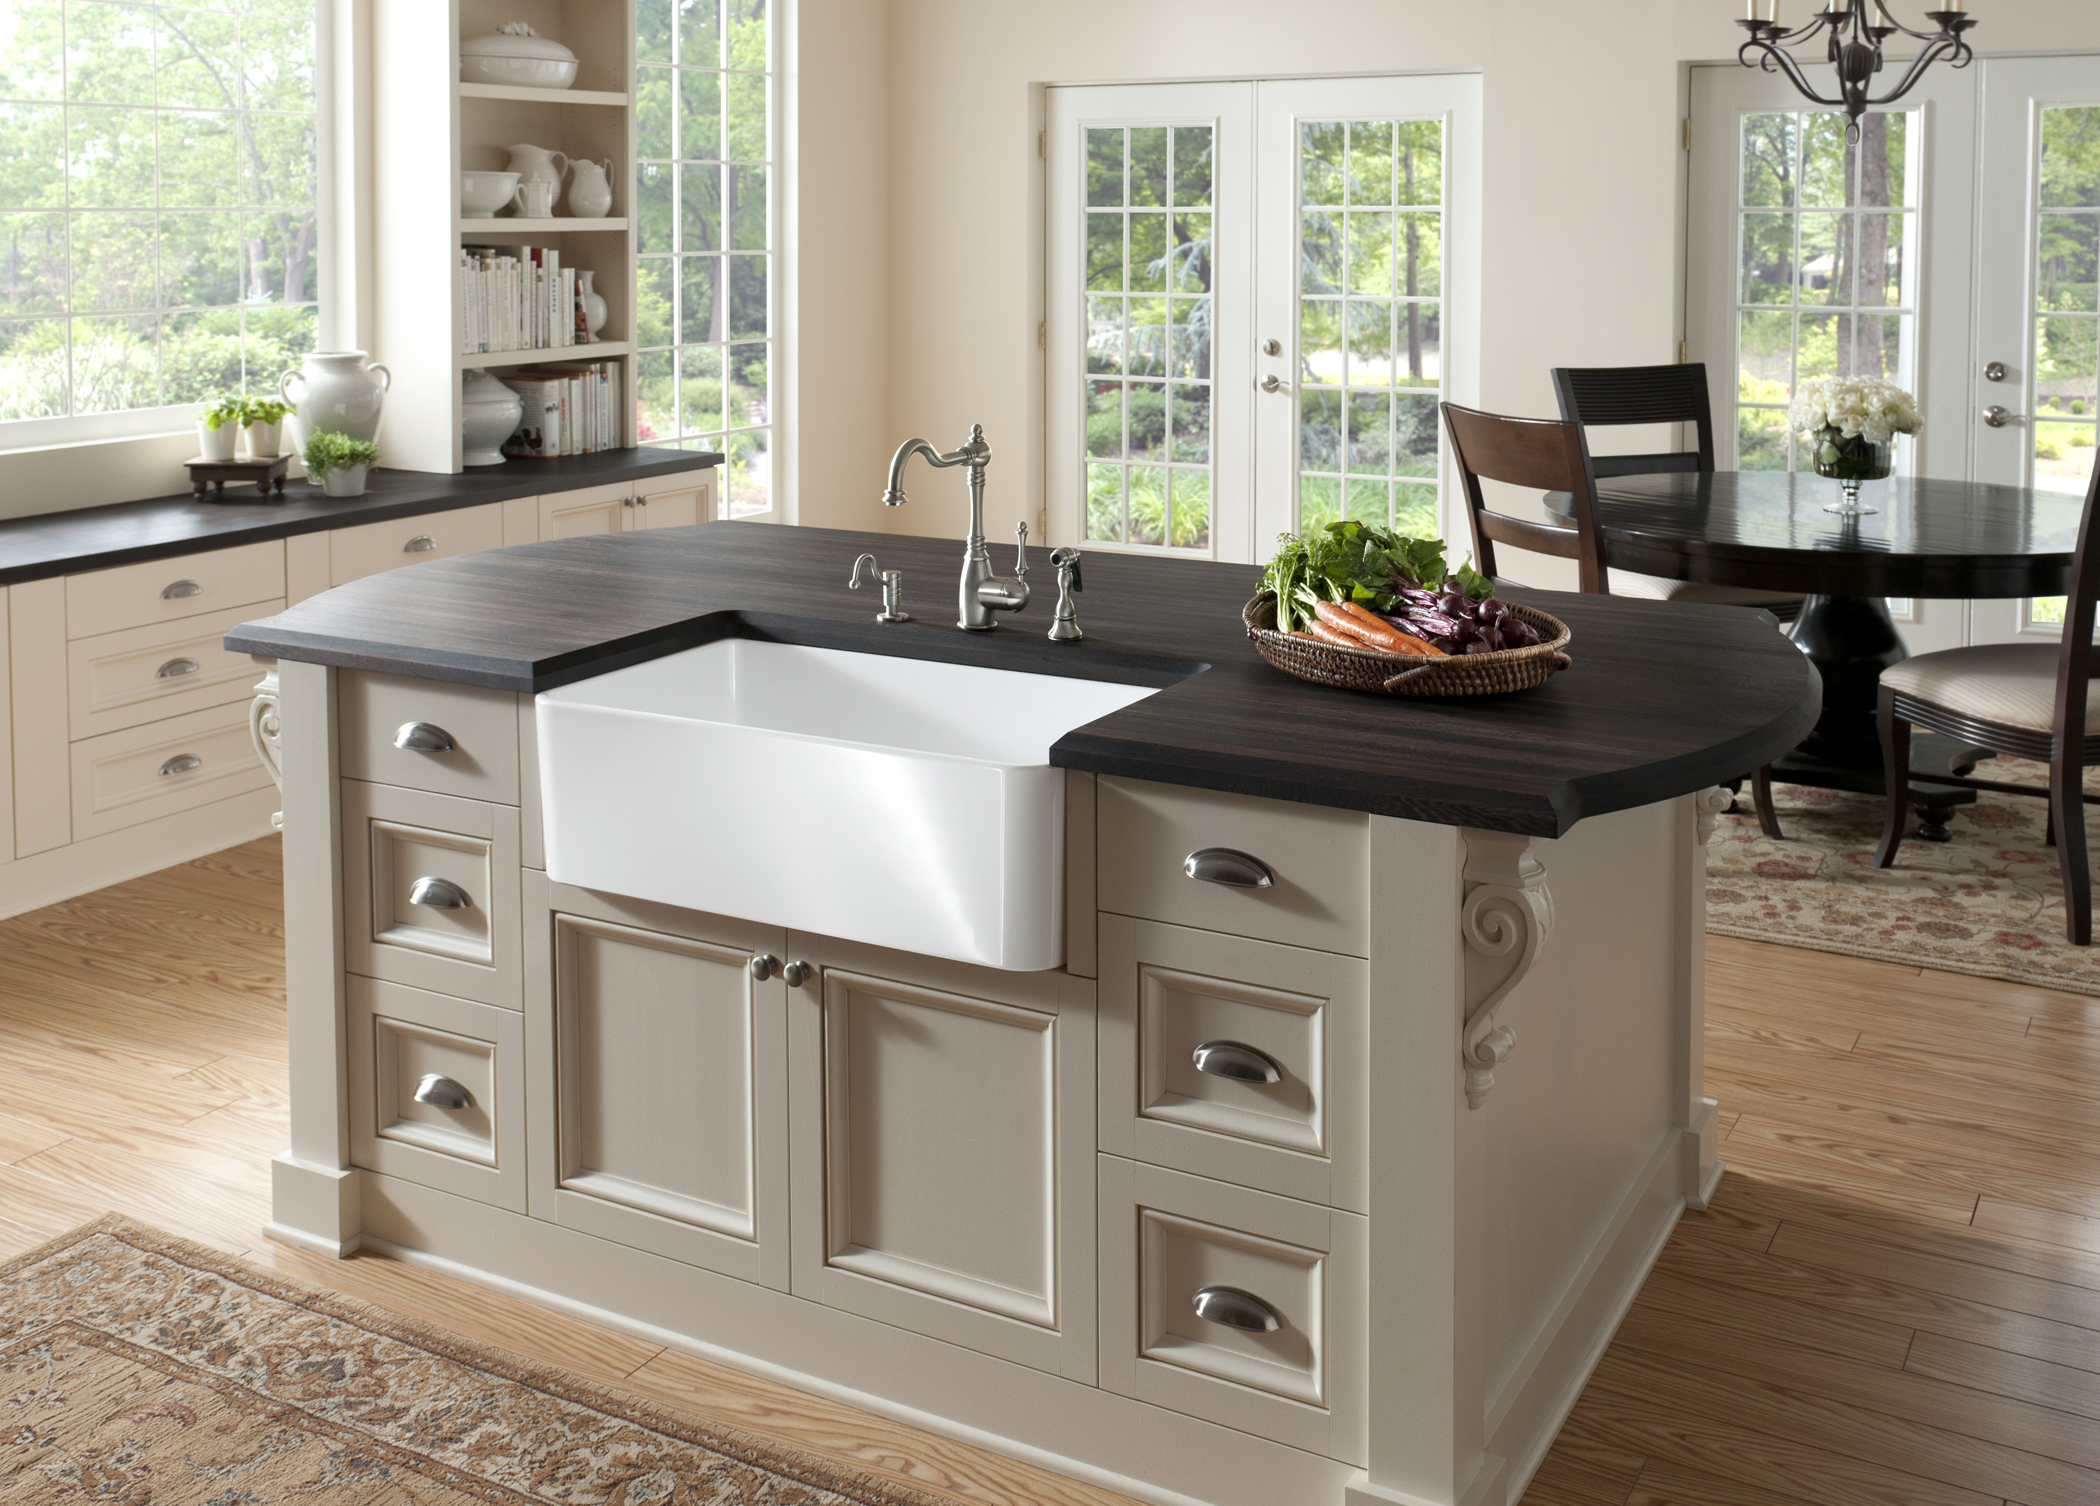 Small Kitchen Islands With Seating Blanco Introduces The Cerana™ Apron Front Kitchen Sink